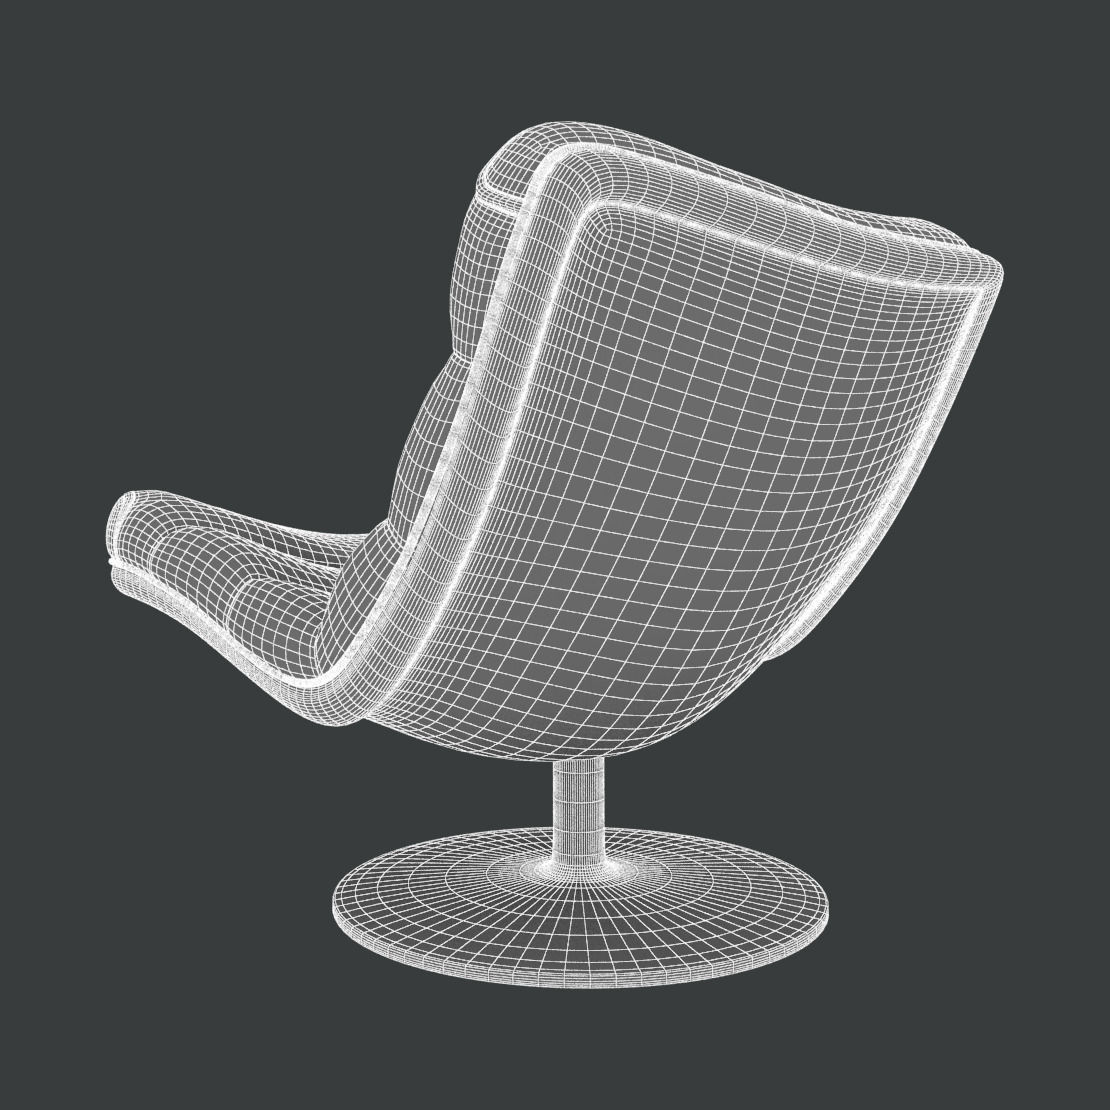 Artifort F978 Chair 3d Model Max Cgtrader Com